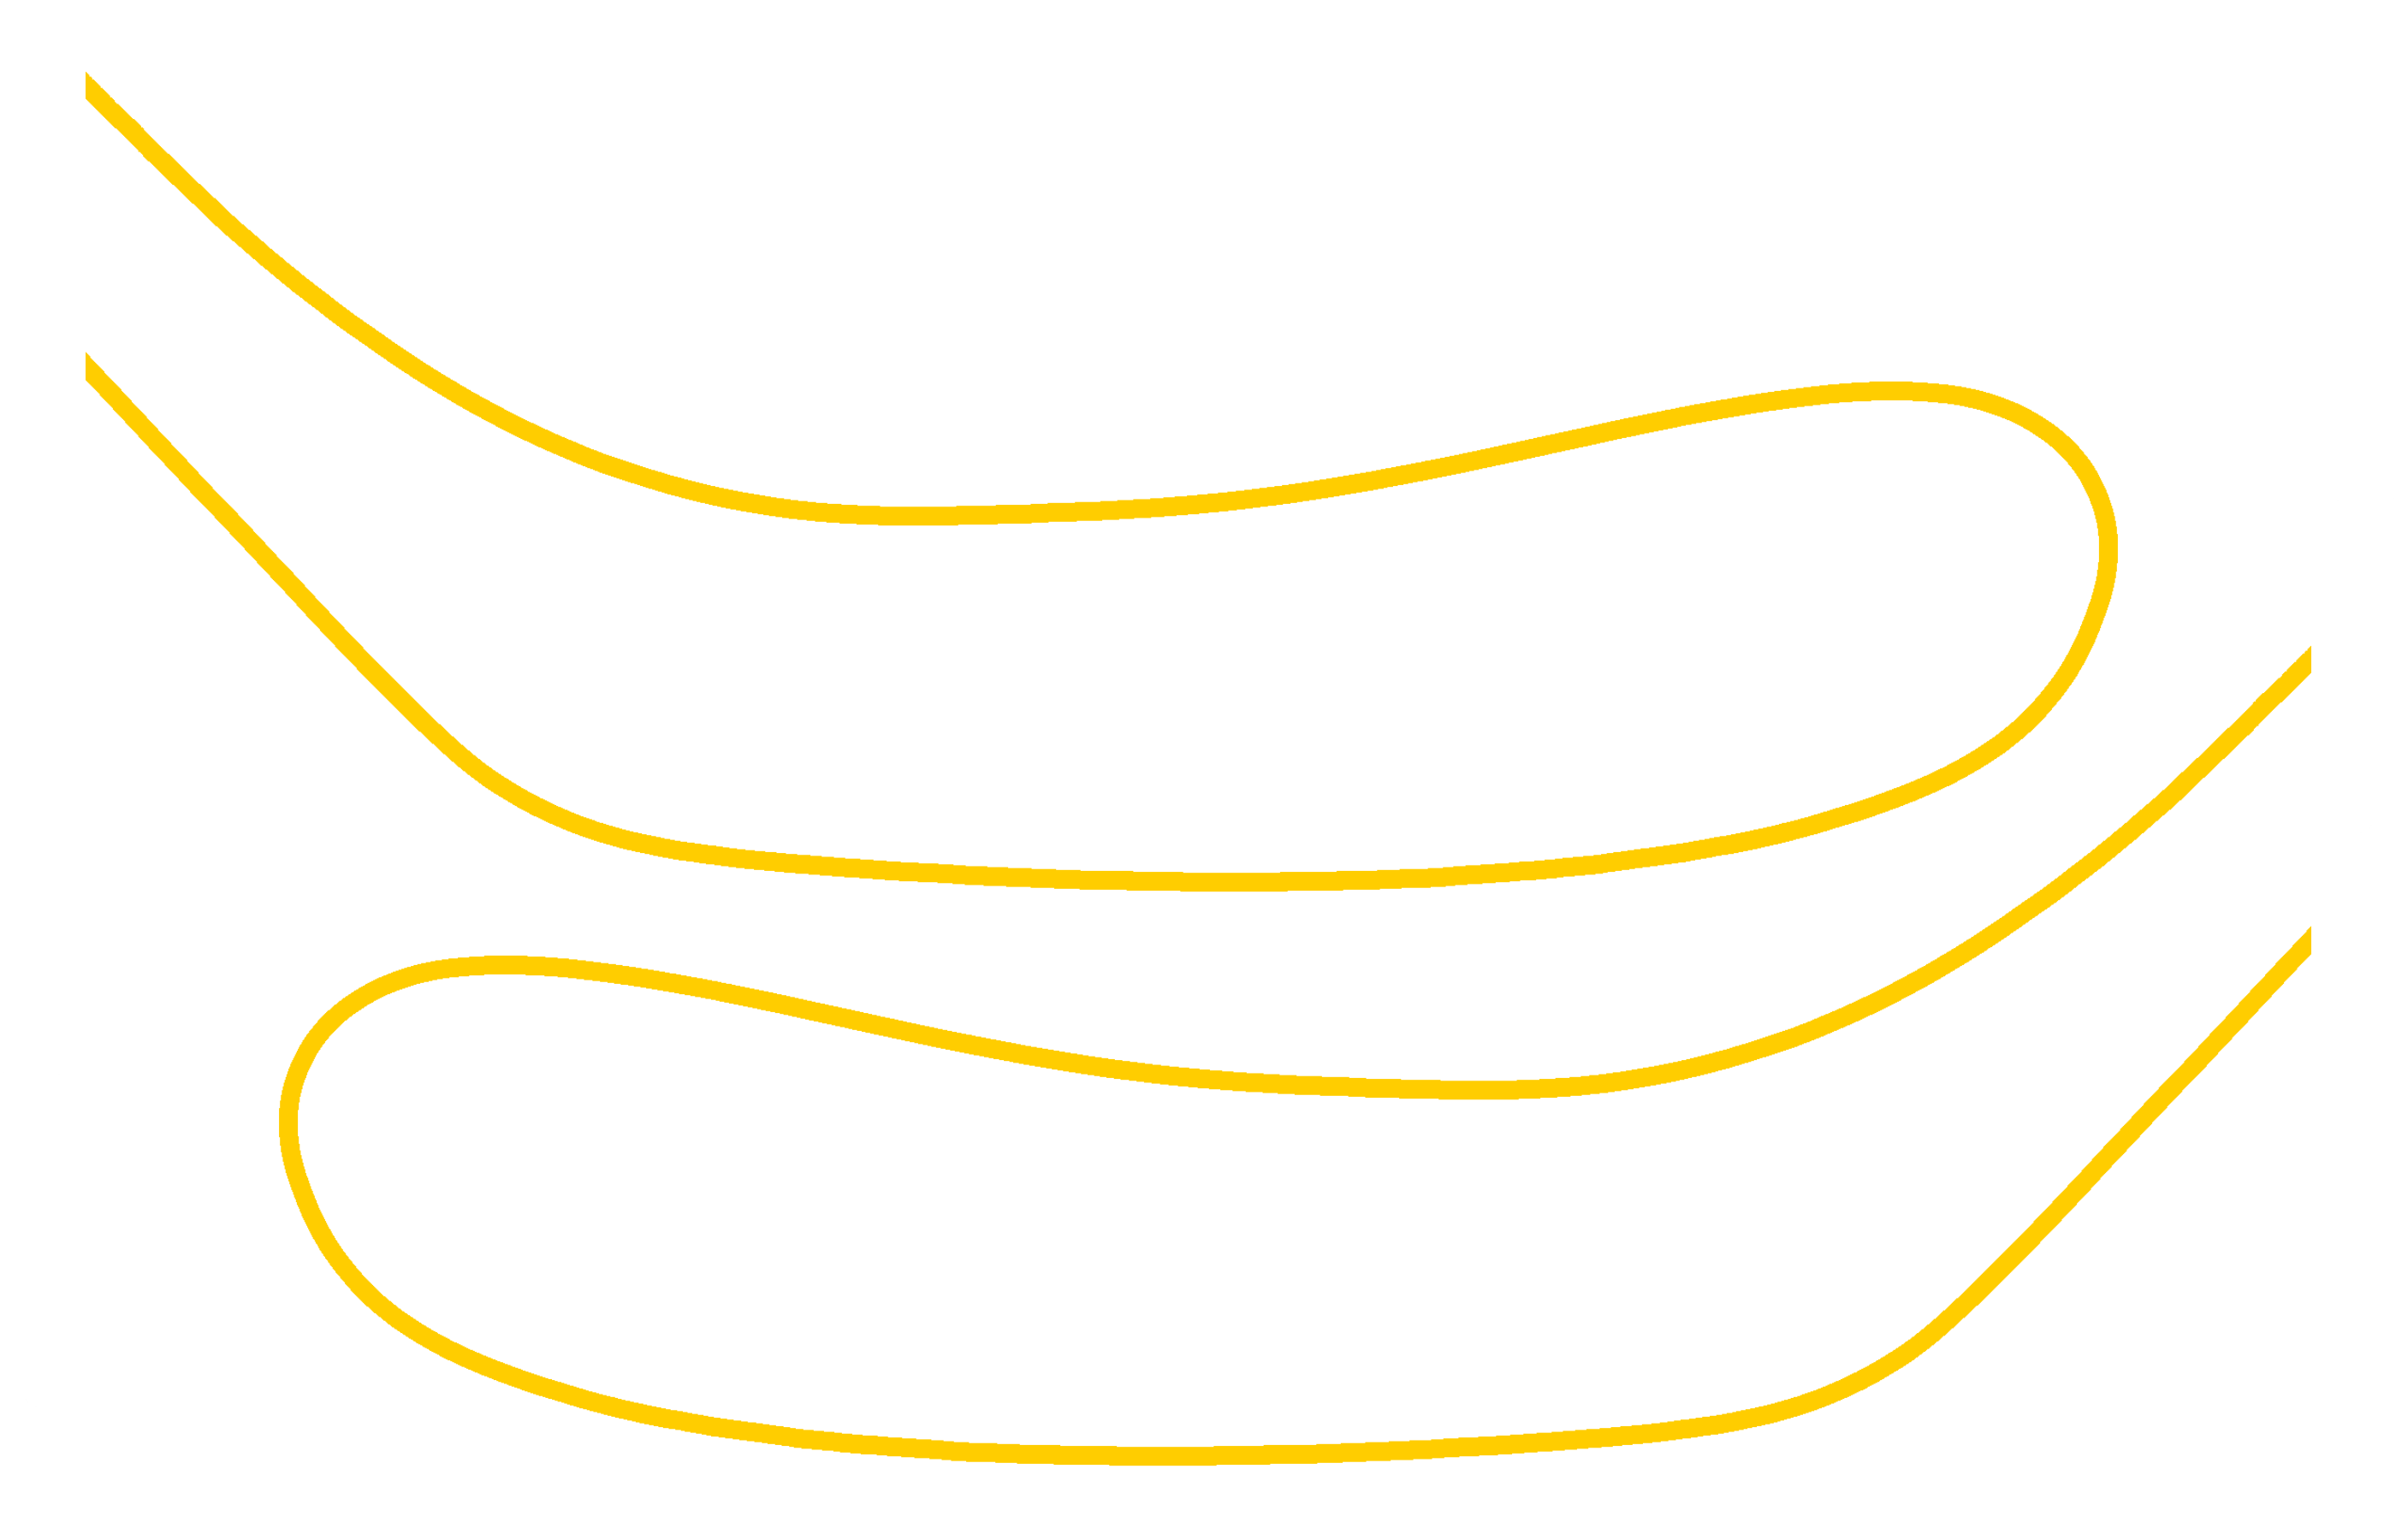 p28 curve profile view